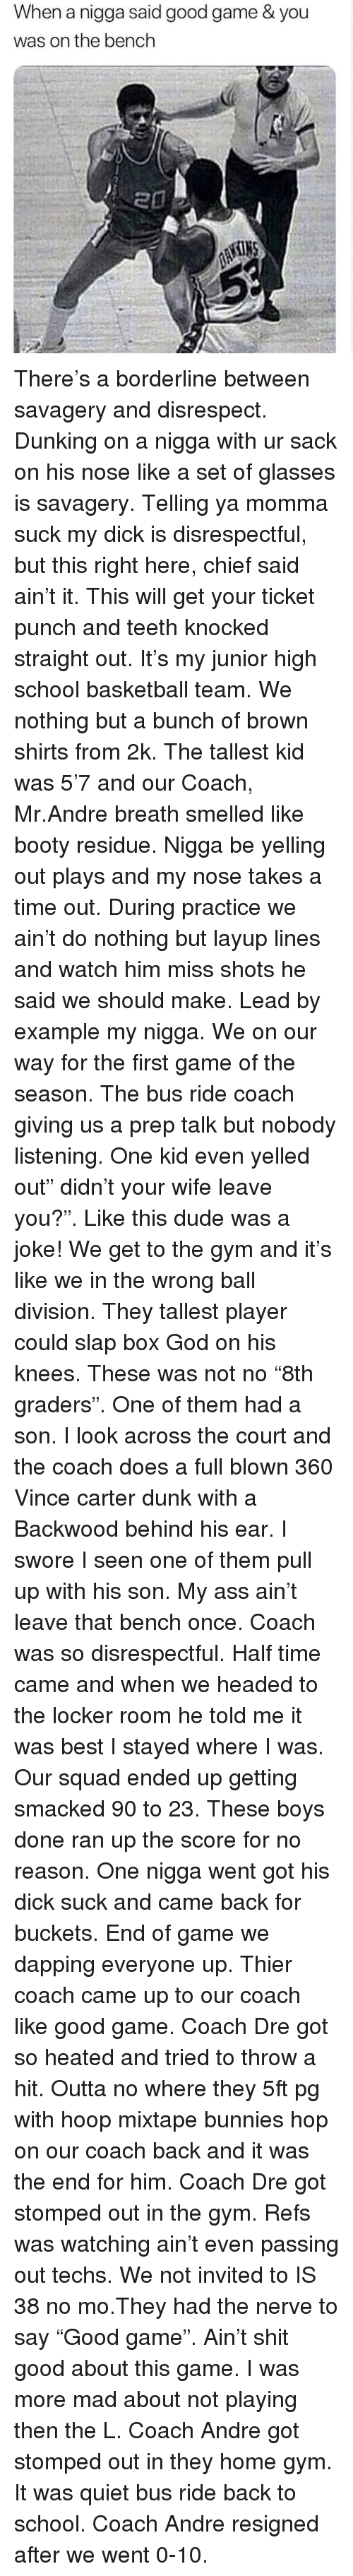 """Ass, Basketball, and Booty: When a nigga said good game & you  was on the bench There's a borderline between savagery and disrespect. Dunking on a nigga with ur sack on his nose like a set of glasses is savagery. Telling ya momma suck my dick is disrespectful, but this right here, chief said ain't it. This will get your ticket punch and teeth knocked straight out. It's my junior high school basketball team. We nothing but a bunch of brown shirts from 2k. The tallest kid was 5'7 and our Coach, Mr.Andre breath smelled like booty residue. Nigga be yelling out plays and my nose takes a time out. During practice we ain't do nothing but layup lines and watch him miss shots he said we should make. Lead by example my nigga. We on our way for the first game of the season. The bus ride coach giving us a prep talk but nobody listening. One kid even yelled out"""" didn't your wife leave you?"""". Like this dude was a joke! We get to the gym and it's like we in the wrong ball division. They tallest player could slap box God on his knees. These was not no """"8th graders"""". One of them had a son. I look across the court and the coach does a full blown 360 Vince carter dunk with a Backwood behind his ear. I swore I seen one of them pull up with his son. My ass ain't leave that bench once. Coach was so disrespectful. Half time came and when we headed to the locker room he told me it was best I stayed where I was. Our squad ended up getting smacked 90 to 23. These boys done ran up the score for no reason. One nigga went got his dick suck and came back for buckets. End of game we dapping everyone up. Thier coach came up to our coach like good game. Coach Dre got so heated and tried to throw a hit. Outta no where they 5ft pg with hoop mixtape bunnies hop on our coach back and it was the end for him. Coach Dre got stomped out in the gym. Refs was watching ain't even passing out techs. We not invited to IS 38 no mo.They had the nerve to say """"Good game"""". Ain't shit good about this game. I was more"""